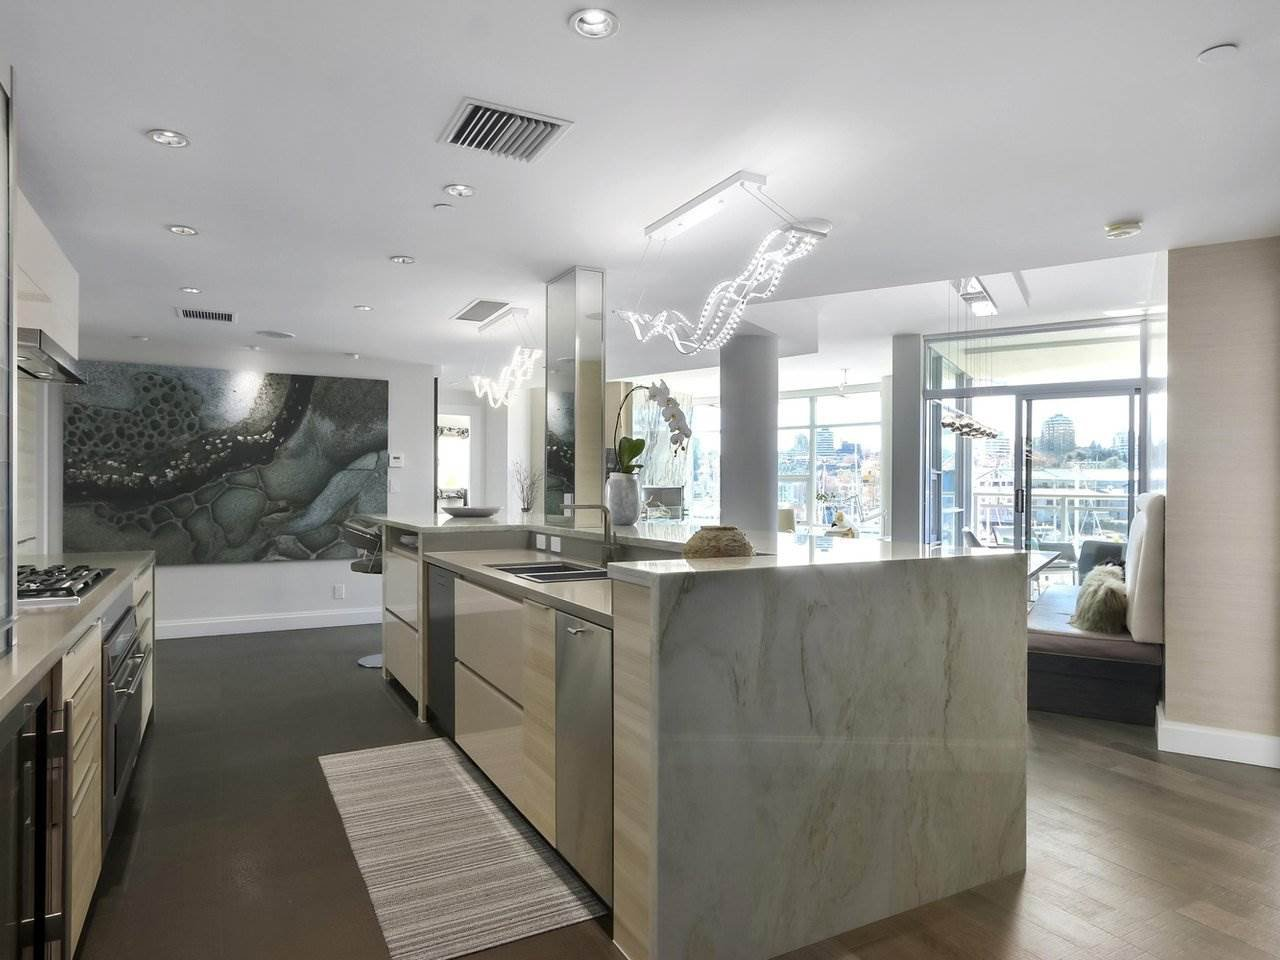 """Main Photo: 302 628 KINGHORNE Mews in Vancouver: Yaletown Condo for sale in """"SILVER SEA"""" (Vancouver West)  : MLS®# R2525592"""